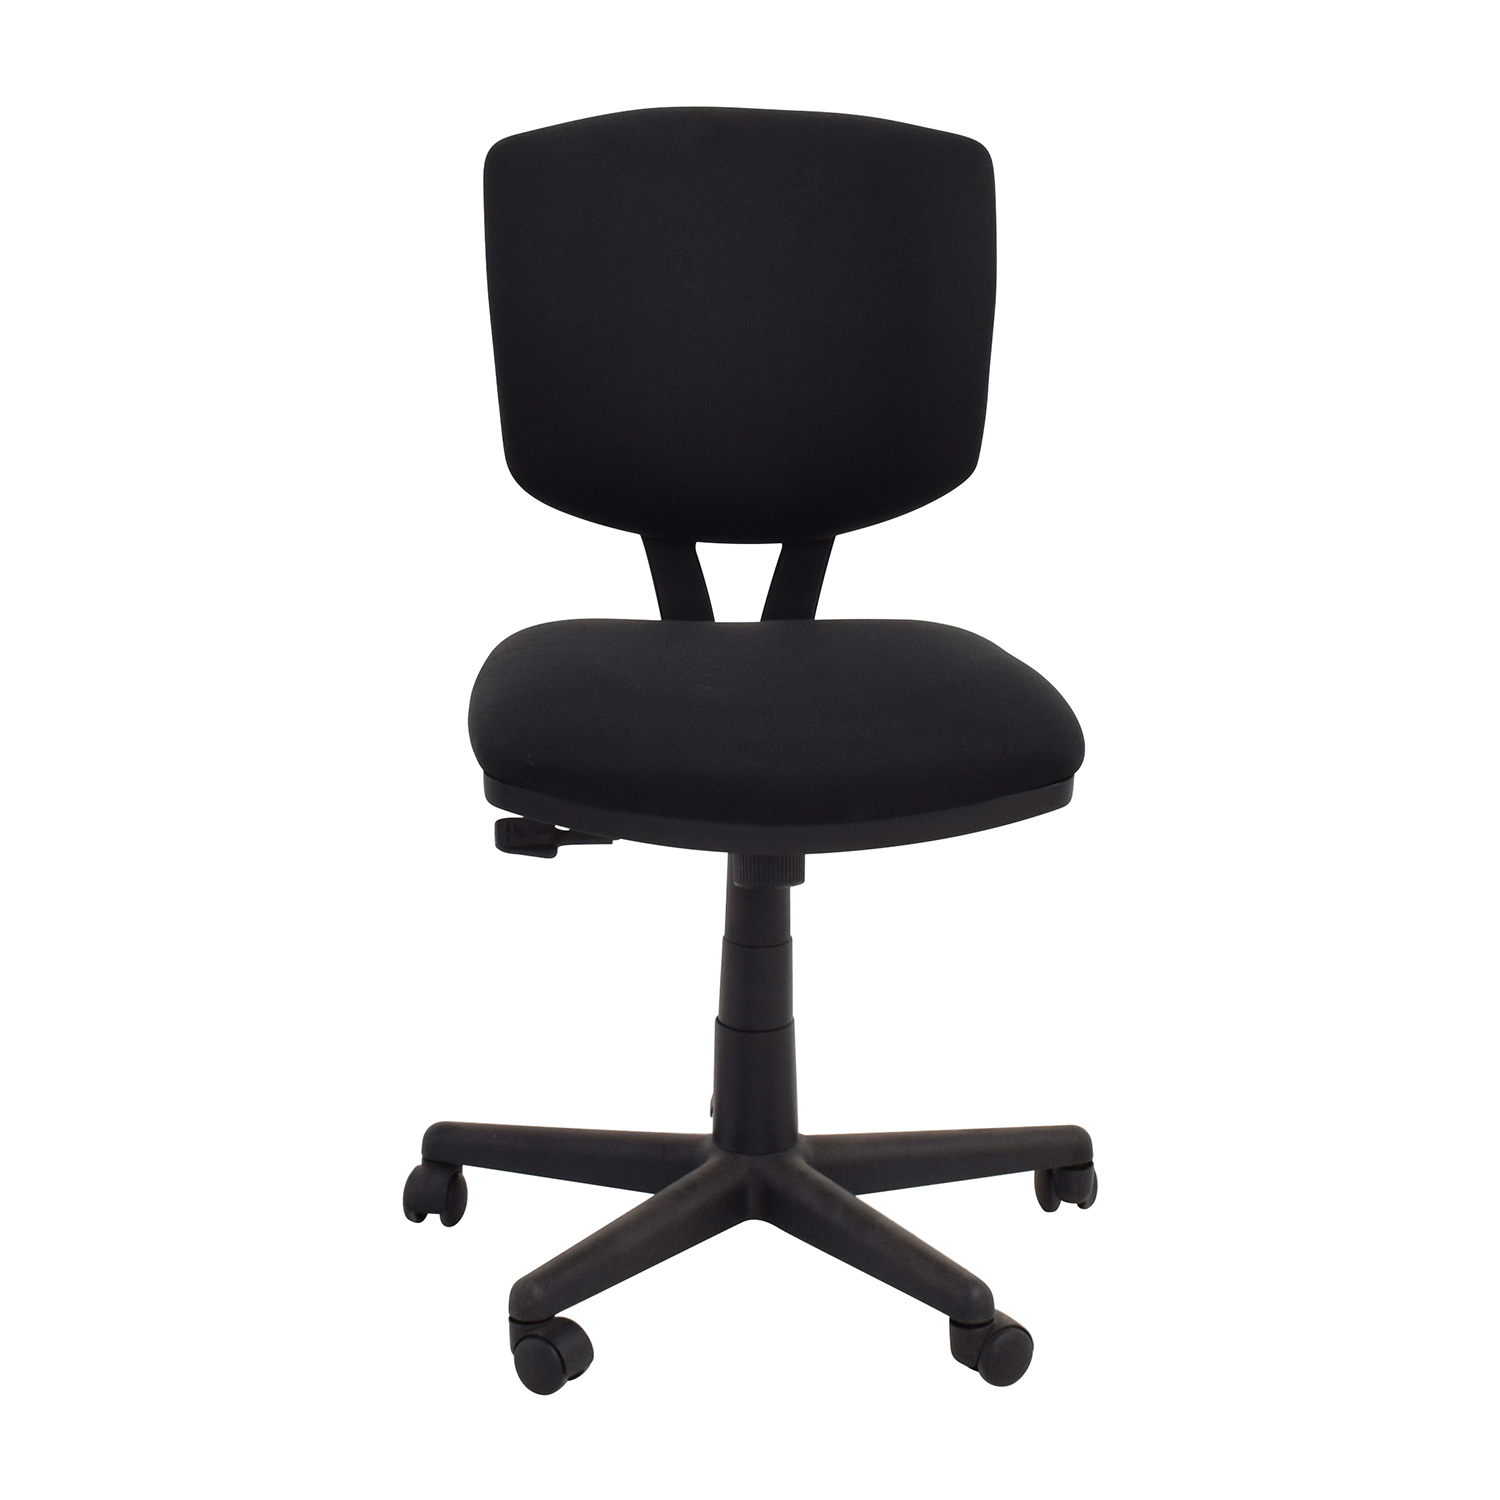 shop  Black Adjustable Office Chair online